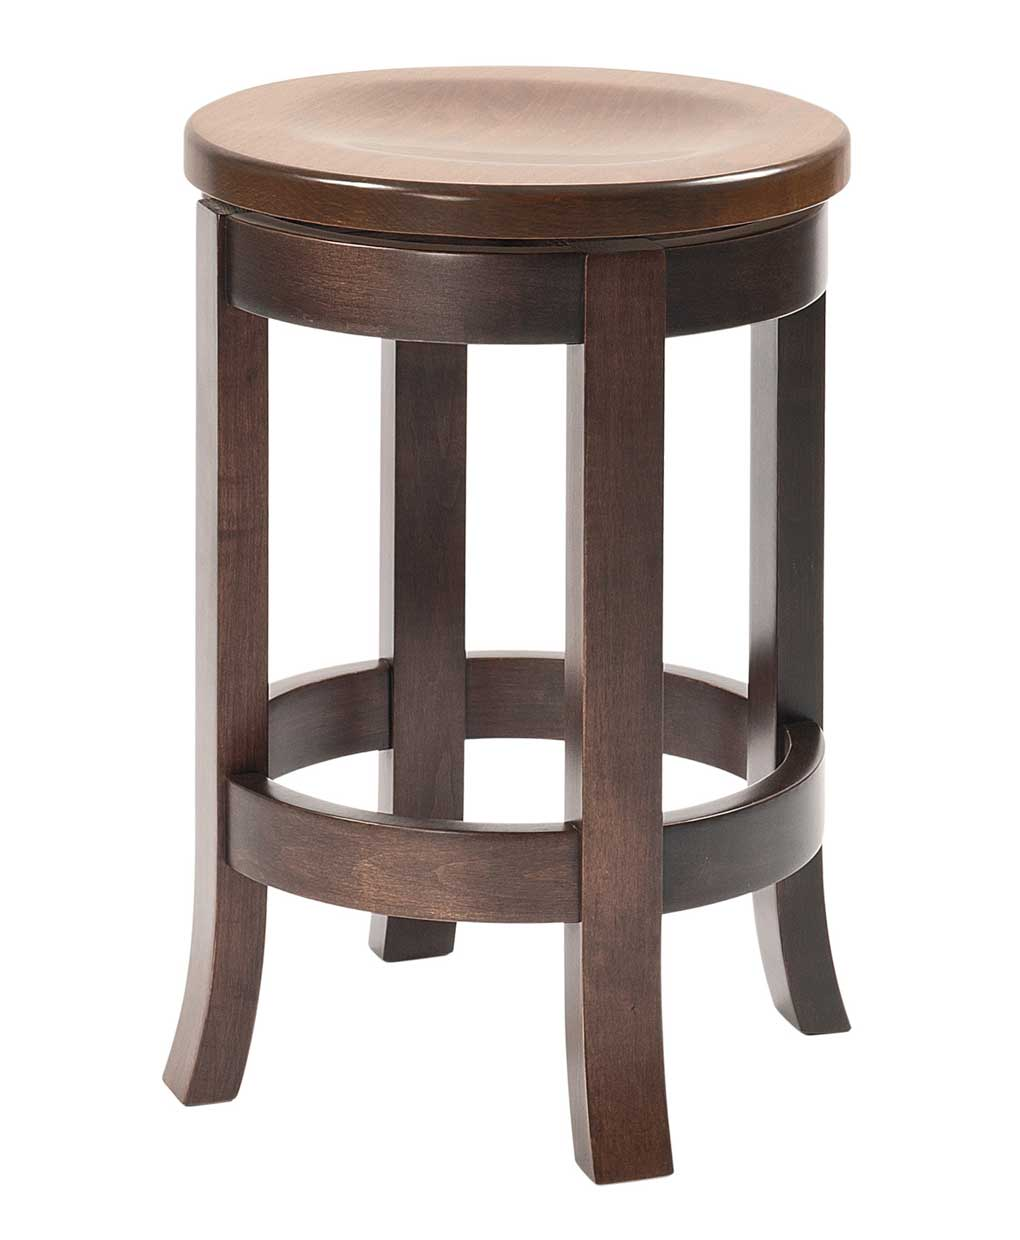 Magnificent Belmont Bar Stool Unemploymentrelief Wooden Chair Designs For Living Room Unemploymentrelieforg